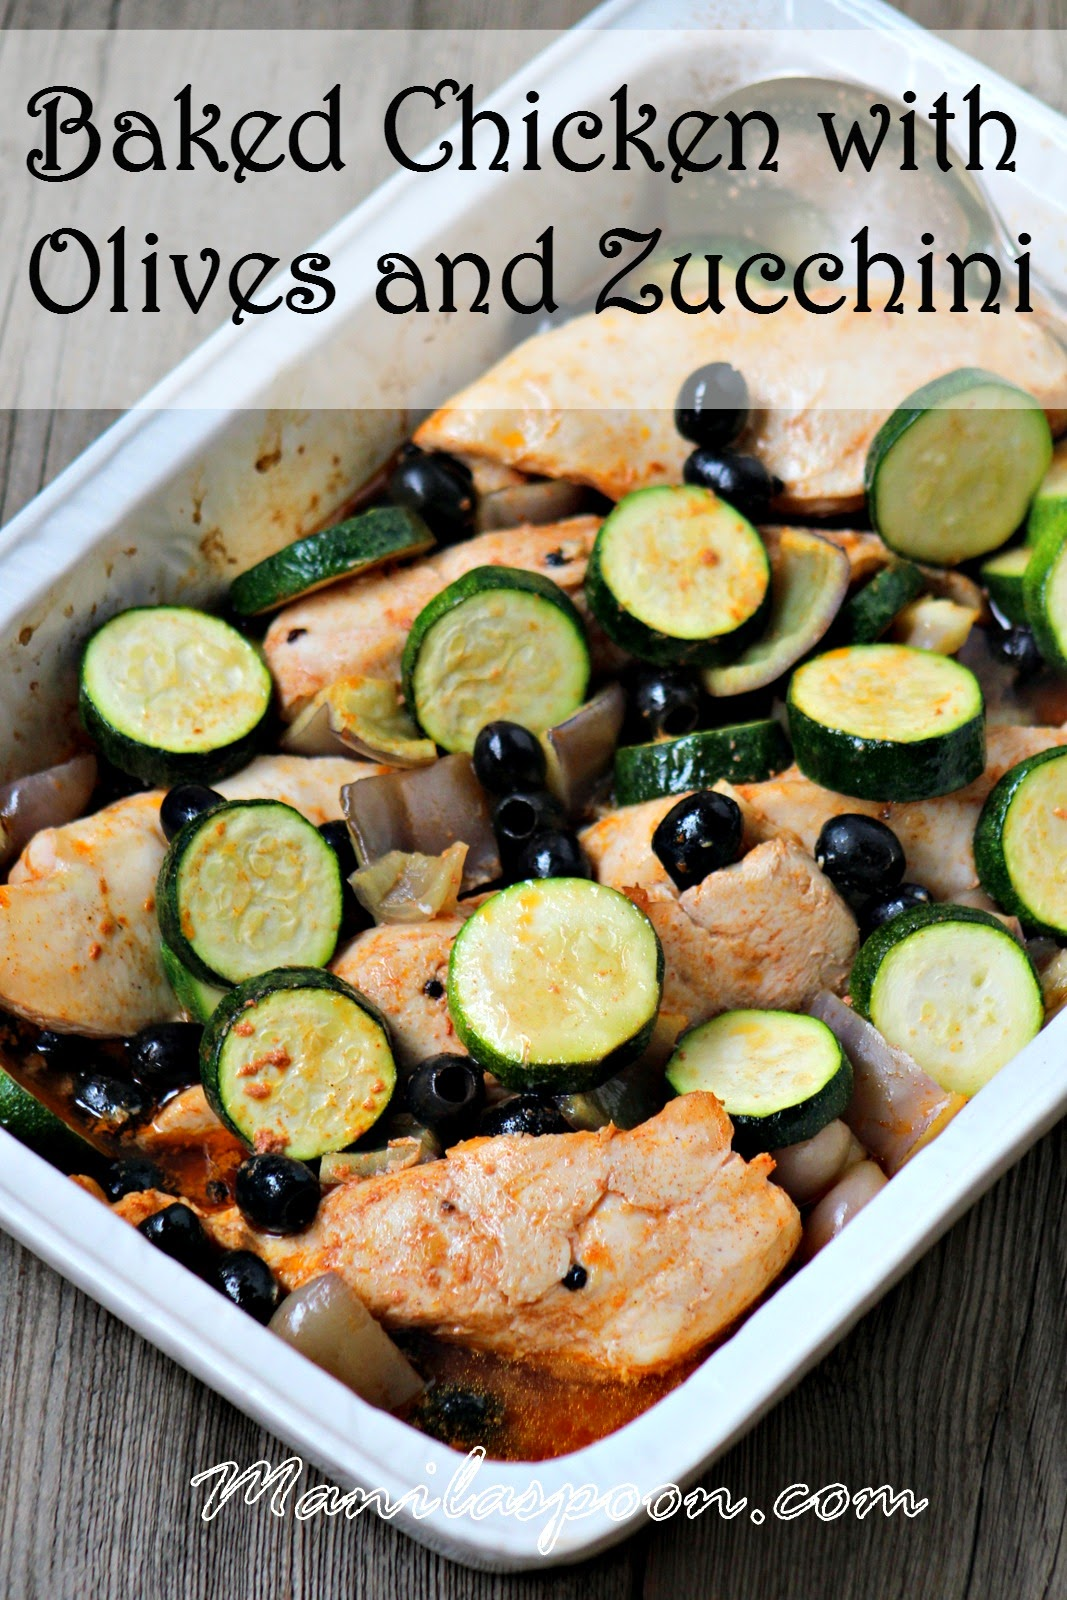 Baked Chicken with Olives and Zucchini